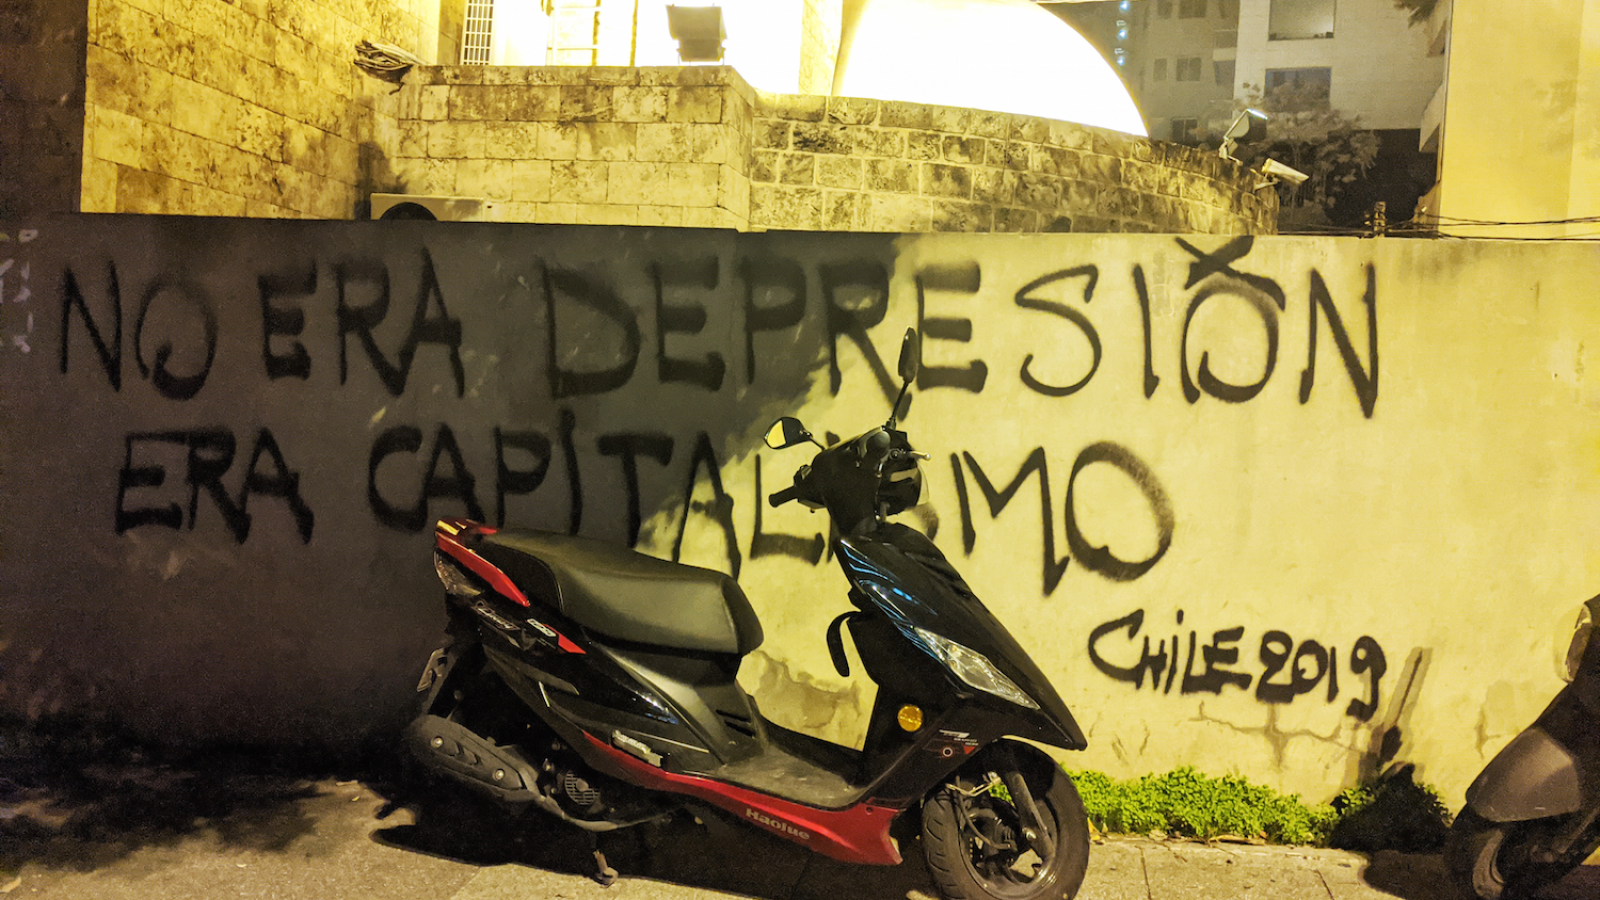 "Inspired by a banner carried by protesters Chile, ""it's not depression, it's capitalism"" reads this wall in Beirut, Lebanon. December 4, 2019. (Lara Bitar/The Public Source)"